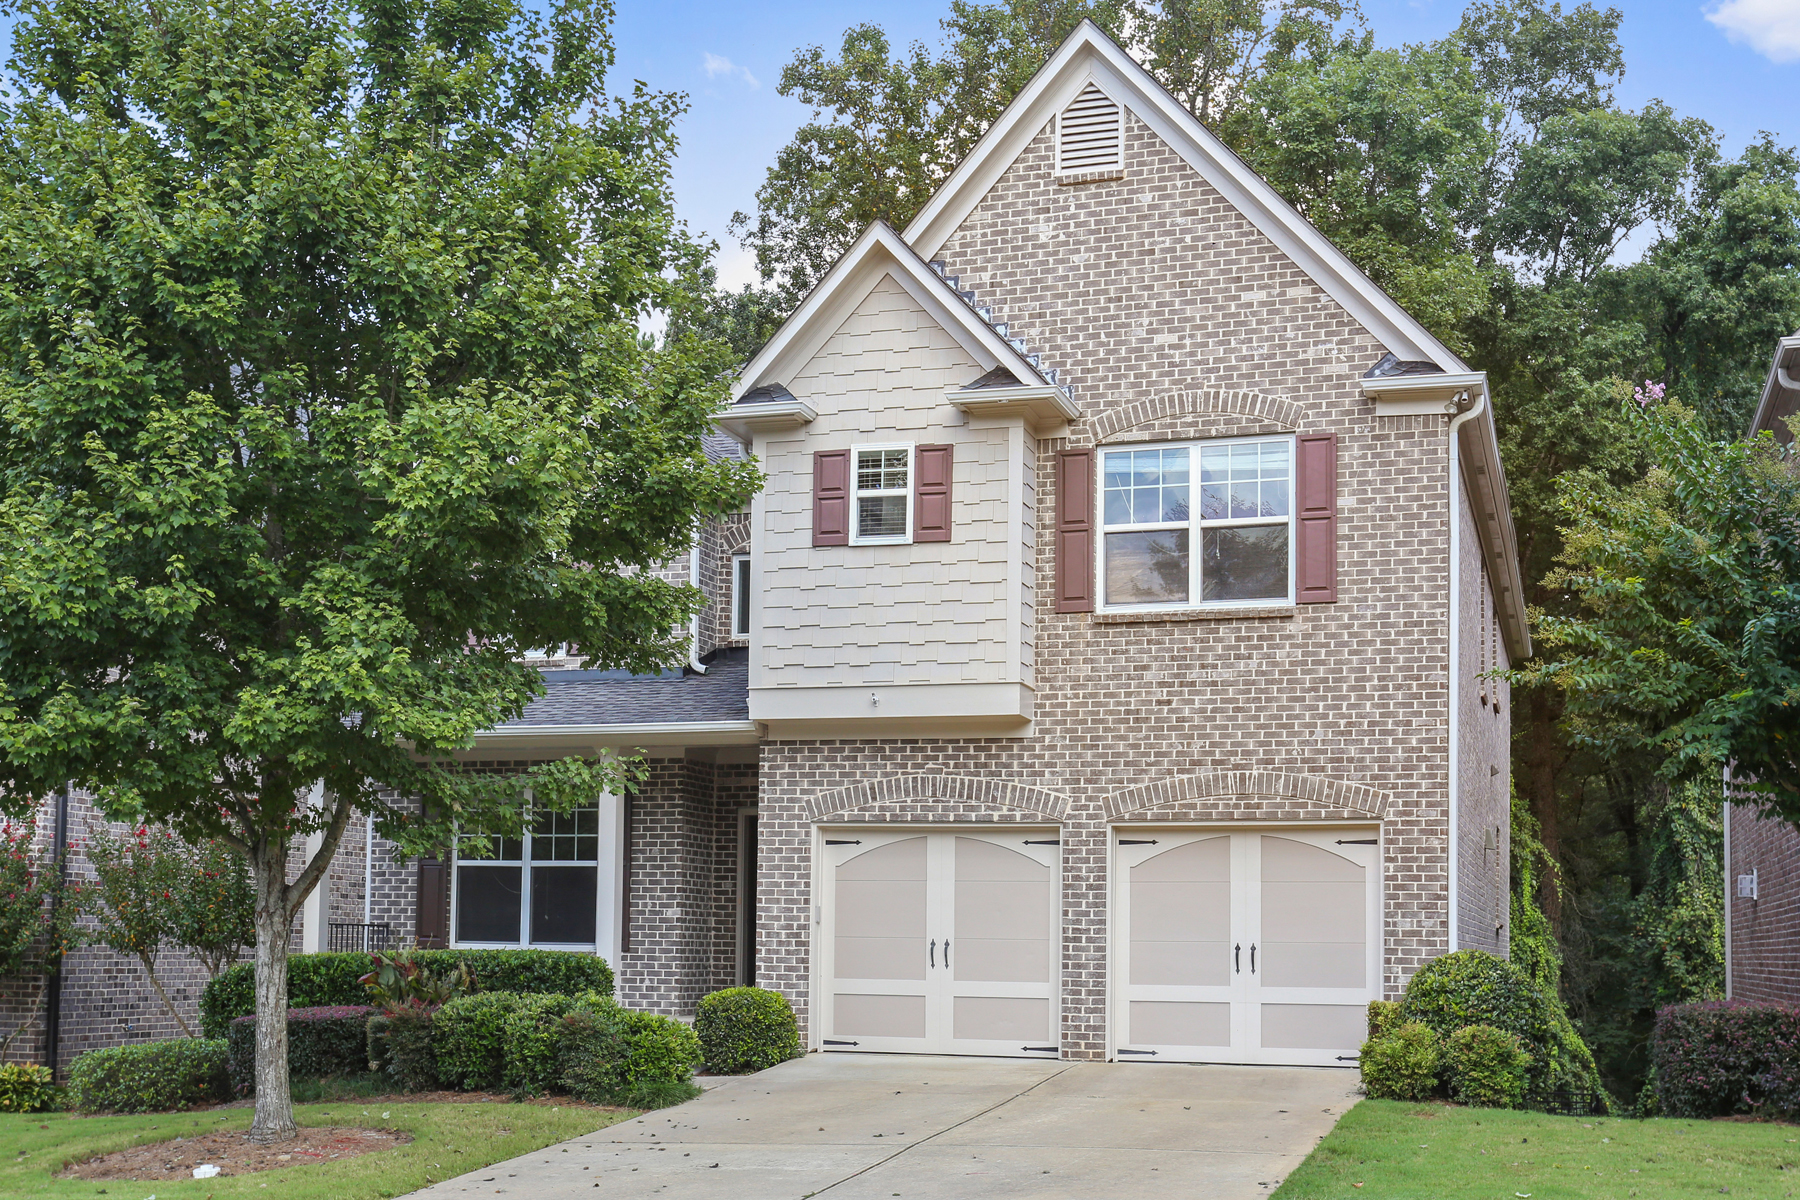 Single Family Home for Sale at Brookhaven Craftsman with Spacious Sun-filled Interior and Superb Finishes 1660 Danbury Parc Pl Atlanta, Georgia 30319 United States